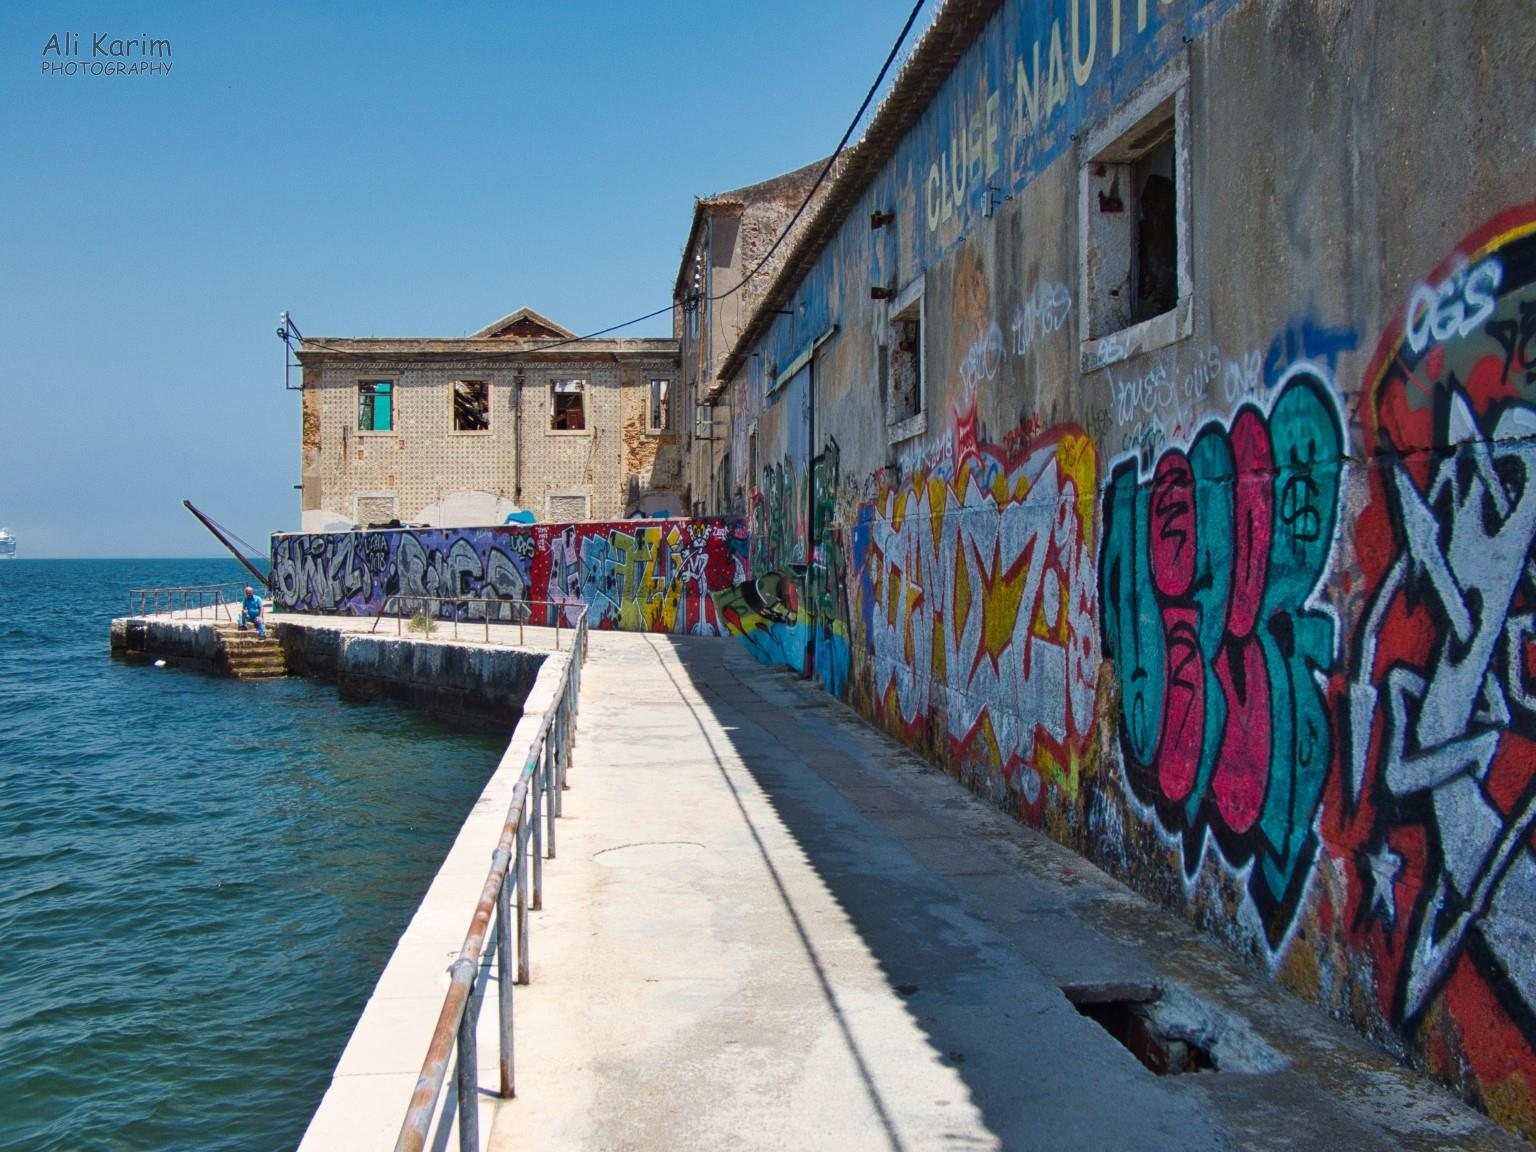 Old, disused and decaying wharf with colorful graffiti